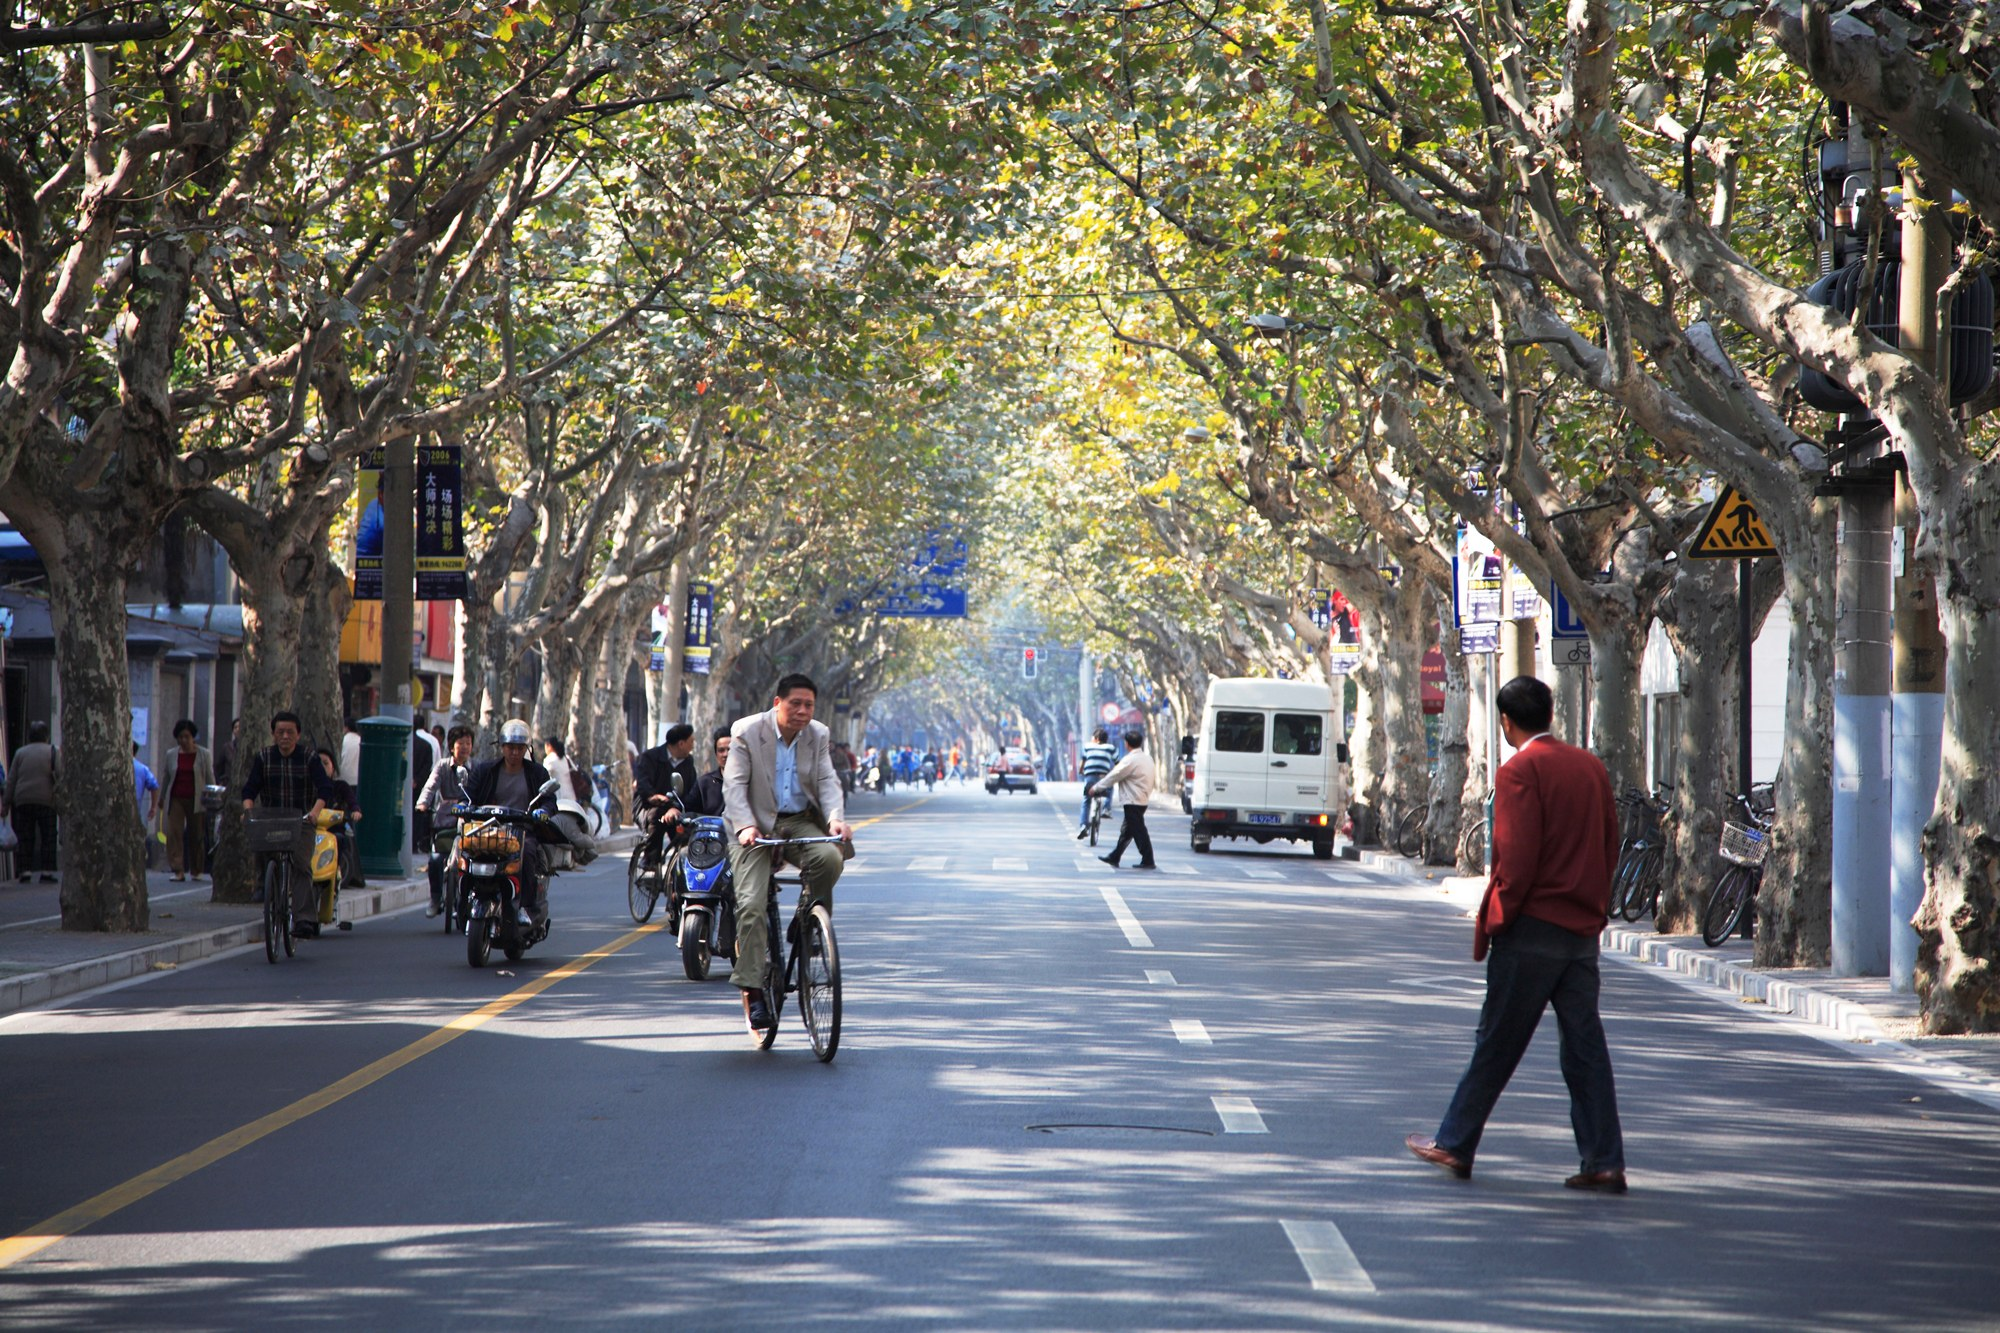 Shanghai travel guide: The streets along French Concession.